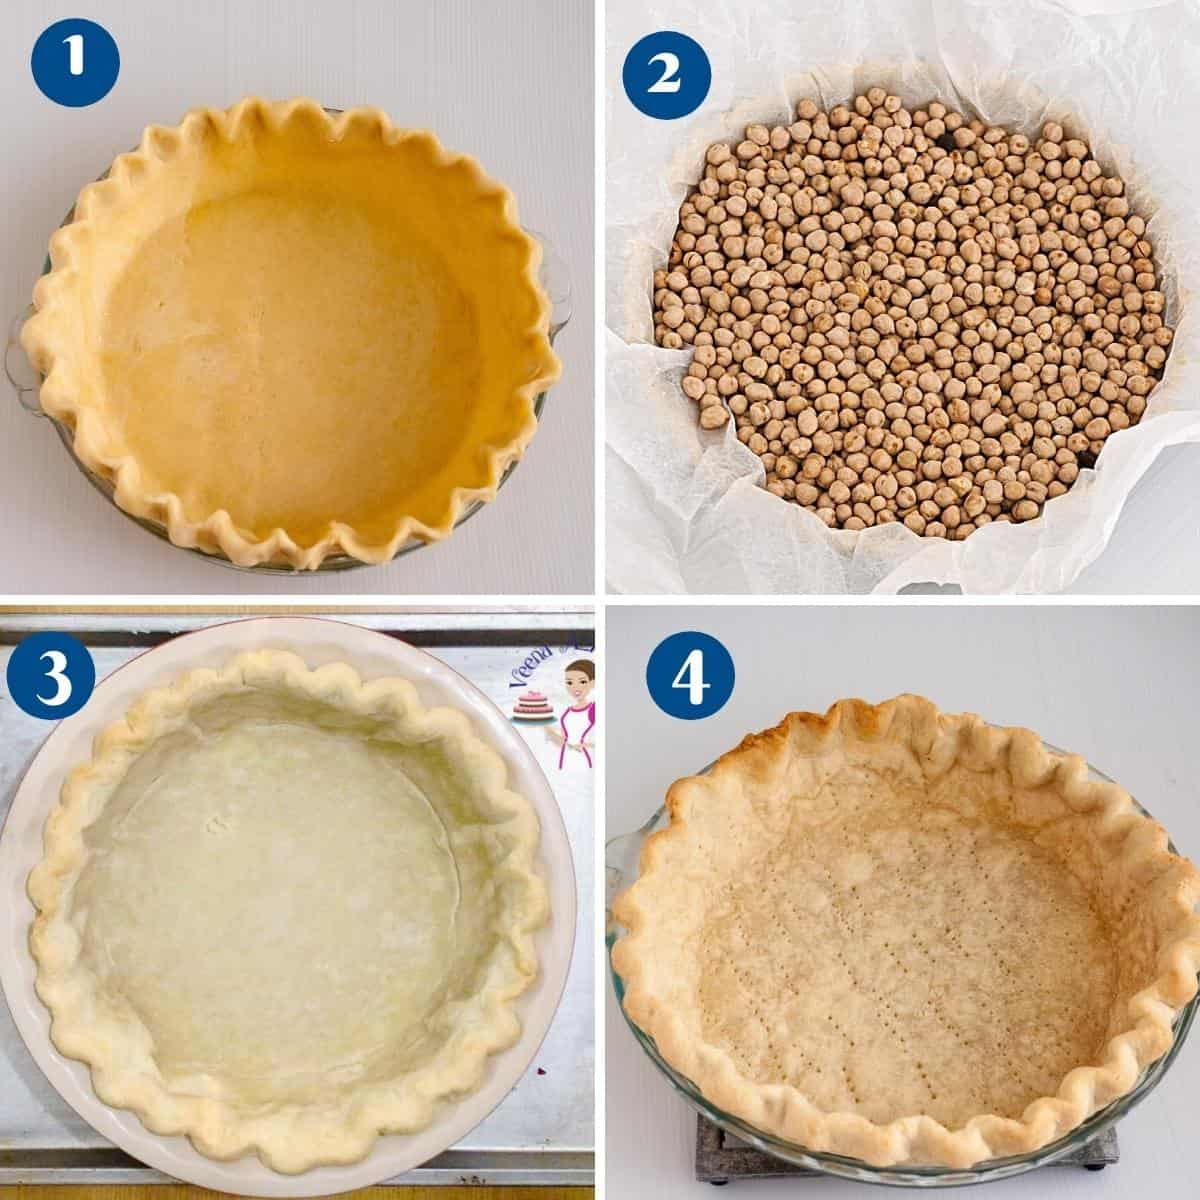 Progress pictures how to fully bake a pie crust.